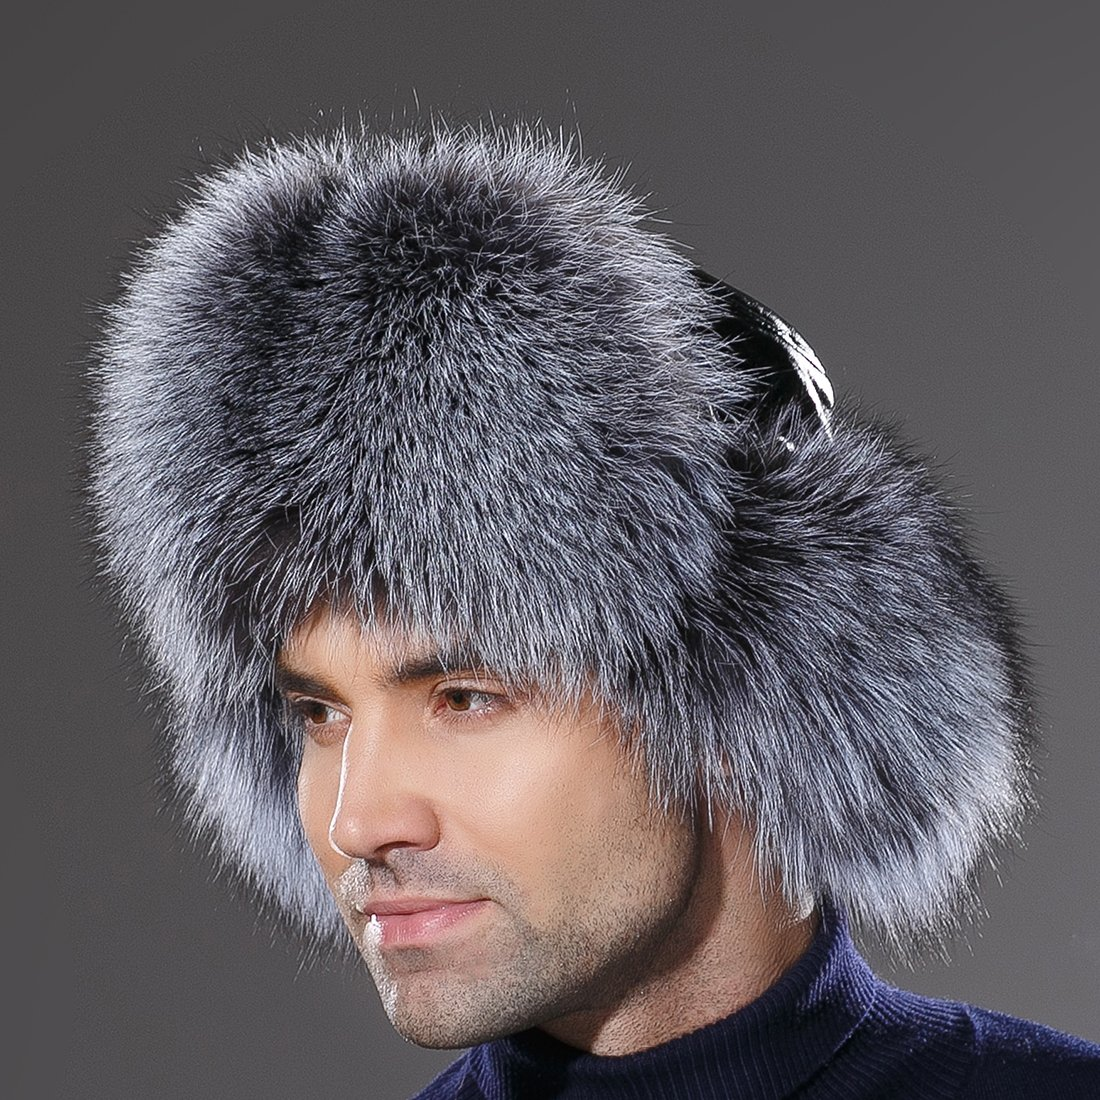 URSFUR Winter Russian Fur Hat Mens Real Silver Fox Fur Ushanka Trapper Cap by URSFUR (Image #6)